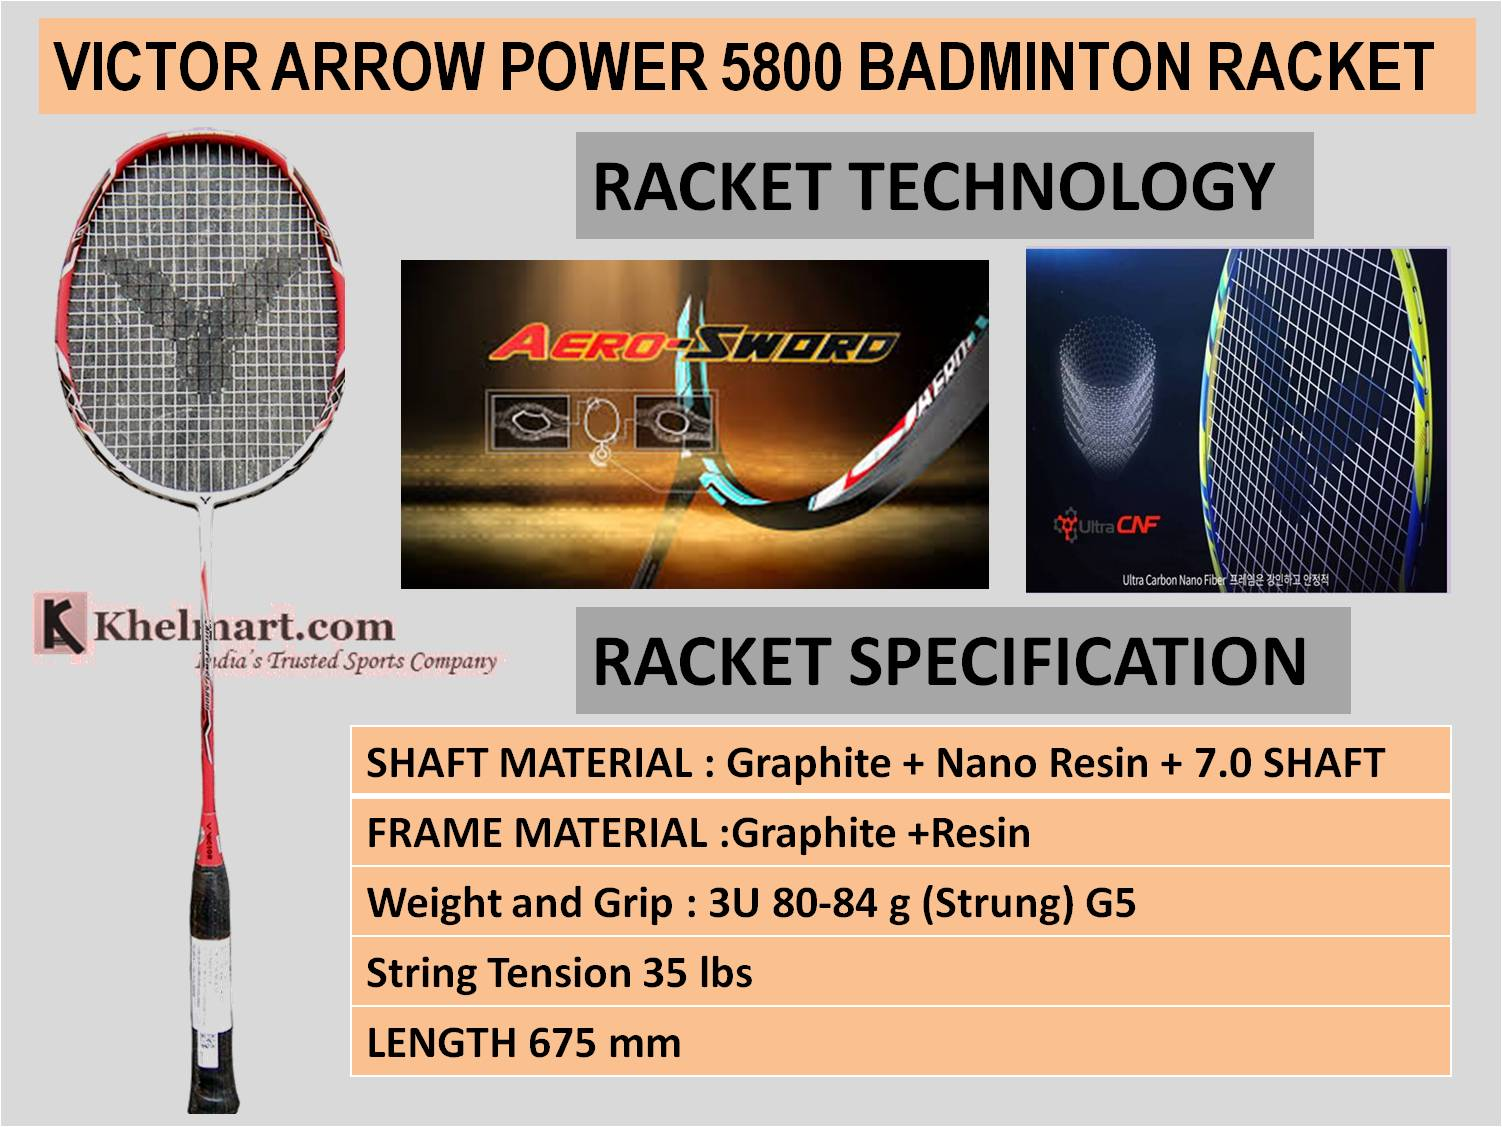 VICTOR_ARROW_POWER_5800_BADMINTON_RACKET.jpg